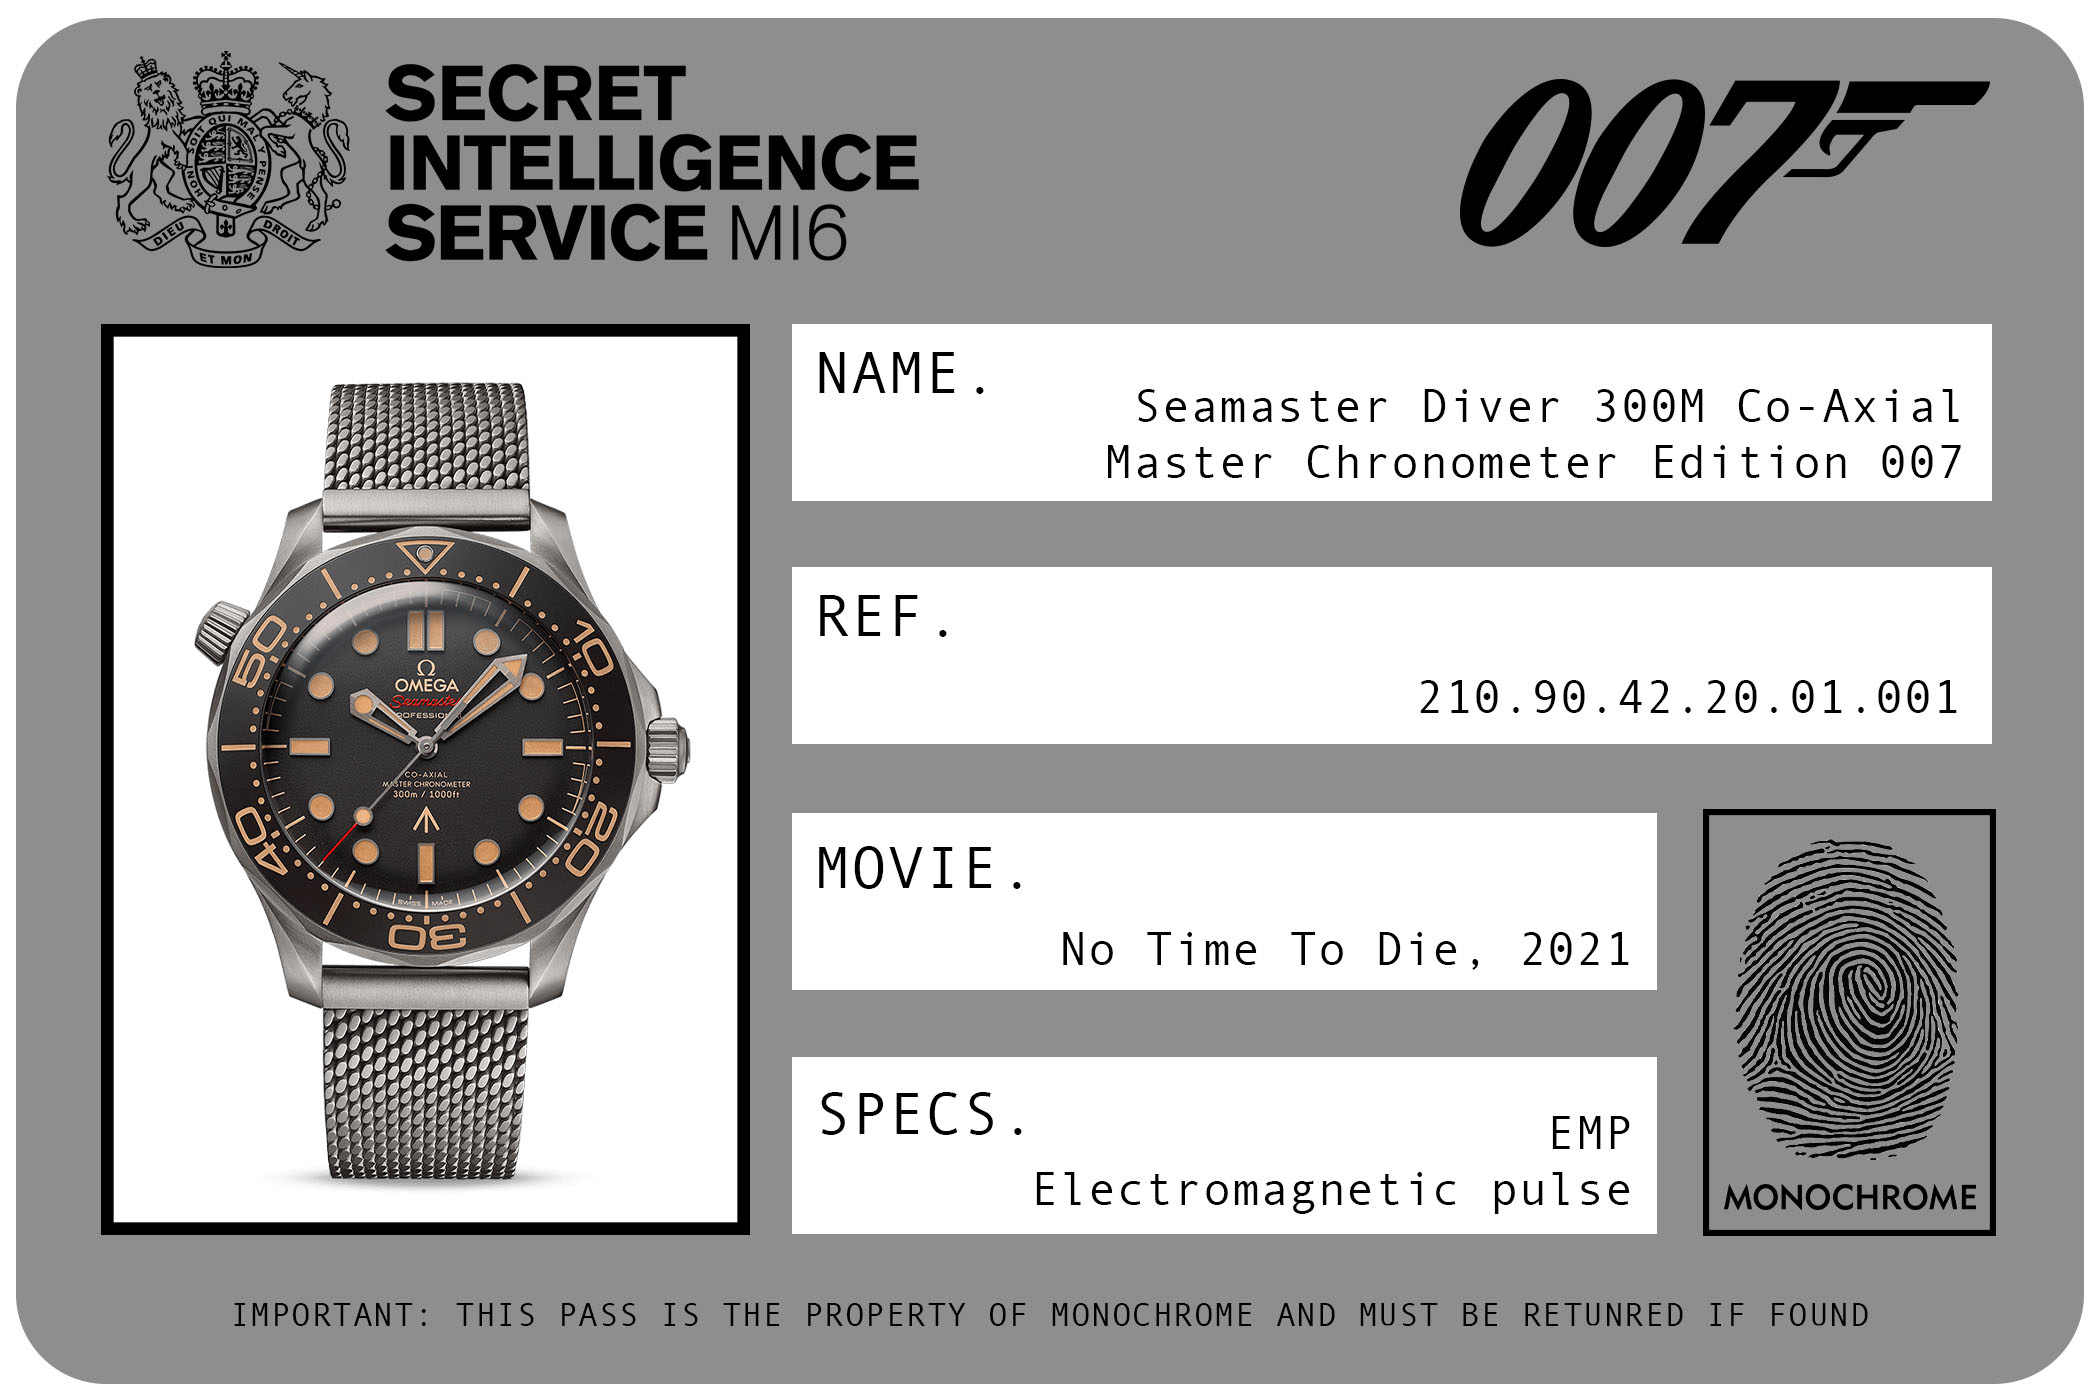 2021 - Omega Seamaster Diver 300M Co-Axial Master-Chronometer Edition 007 Titanium 210.90.42.20.01.001 James Bond No Time To Die ID Card